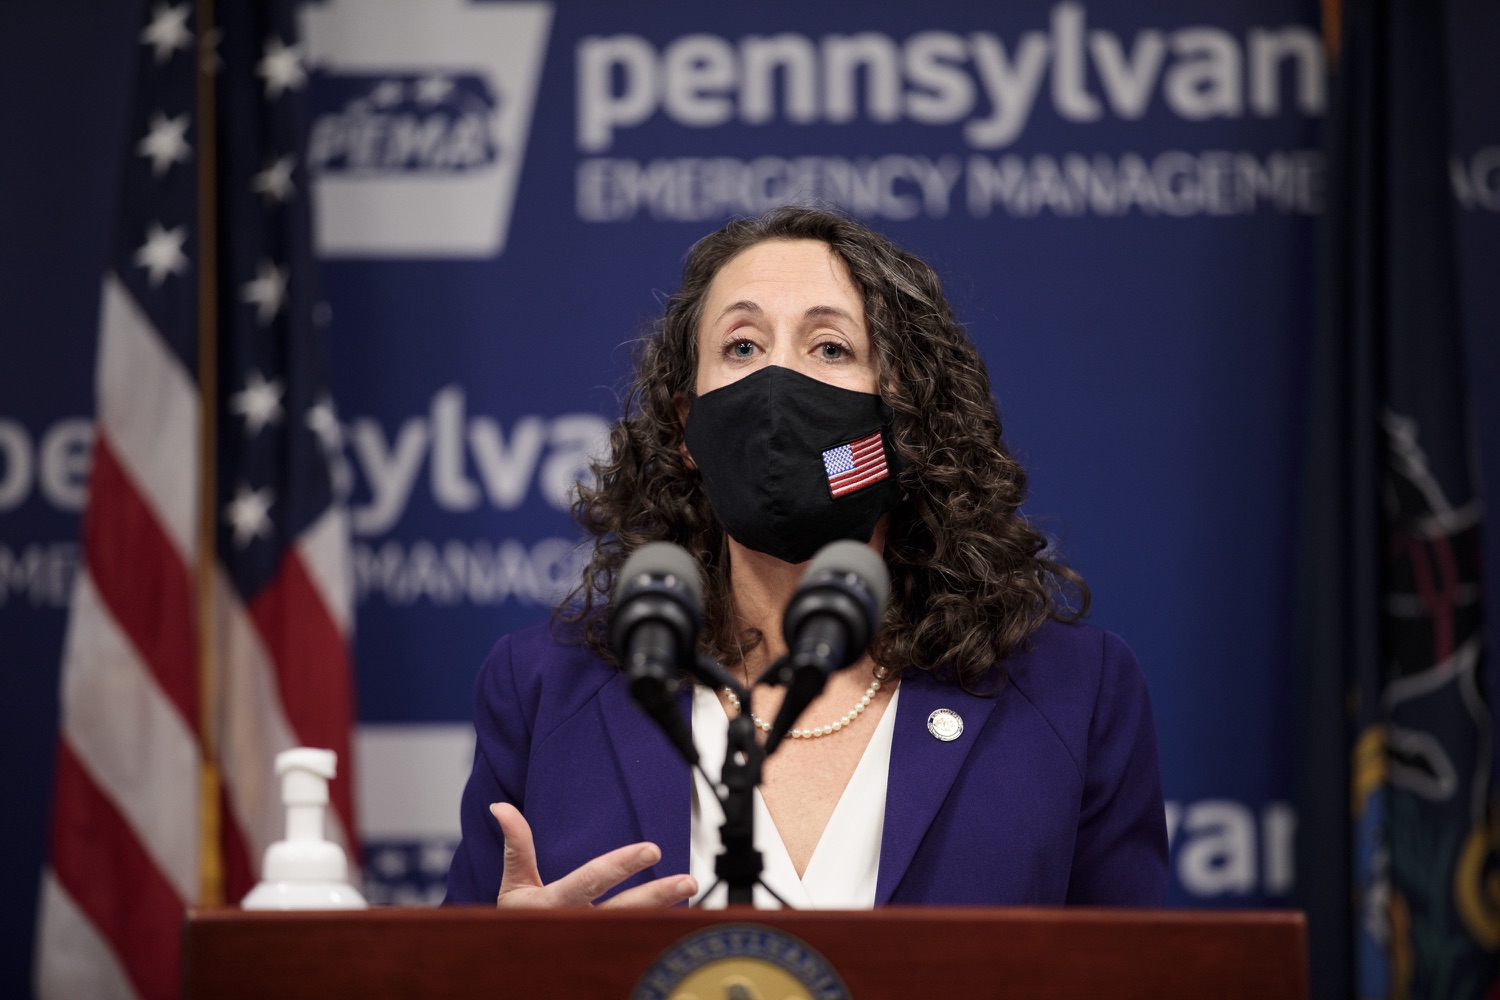 """<a href=""""https://filesource.wostreaming.net/commonwealthofpa/photo/18465_gov_electoralCollege_dz_03.jpg"""" target=""""_blank"""">⇣Download Photo<br></a>Secretary of the Commonwealth of Pennsylvania Kathy Boockvar speaking at the press conference.  With Congress preparing to count Electoral College votes today, Governor Tom Wolf was joined by Secretary of State Kathy Boockvar and Philadelphia City Commissioner Al Schmidt to emphasize that Pennsylvania had a free, fair and secure election. All efforts by Congressional Republicans to overthrow the election results and subvert the will of the voters are disgraceful and must be rejected. Harrisburg, PA  January 6, 2021"""